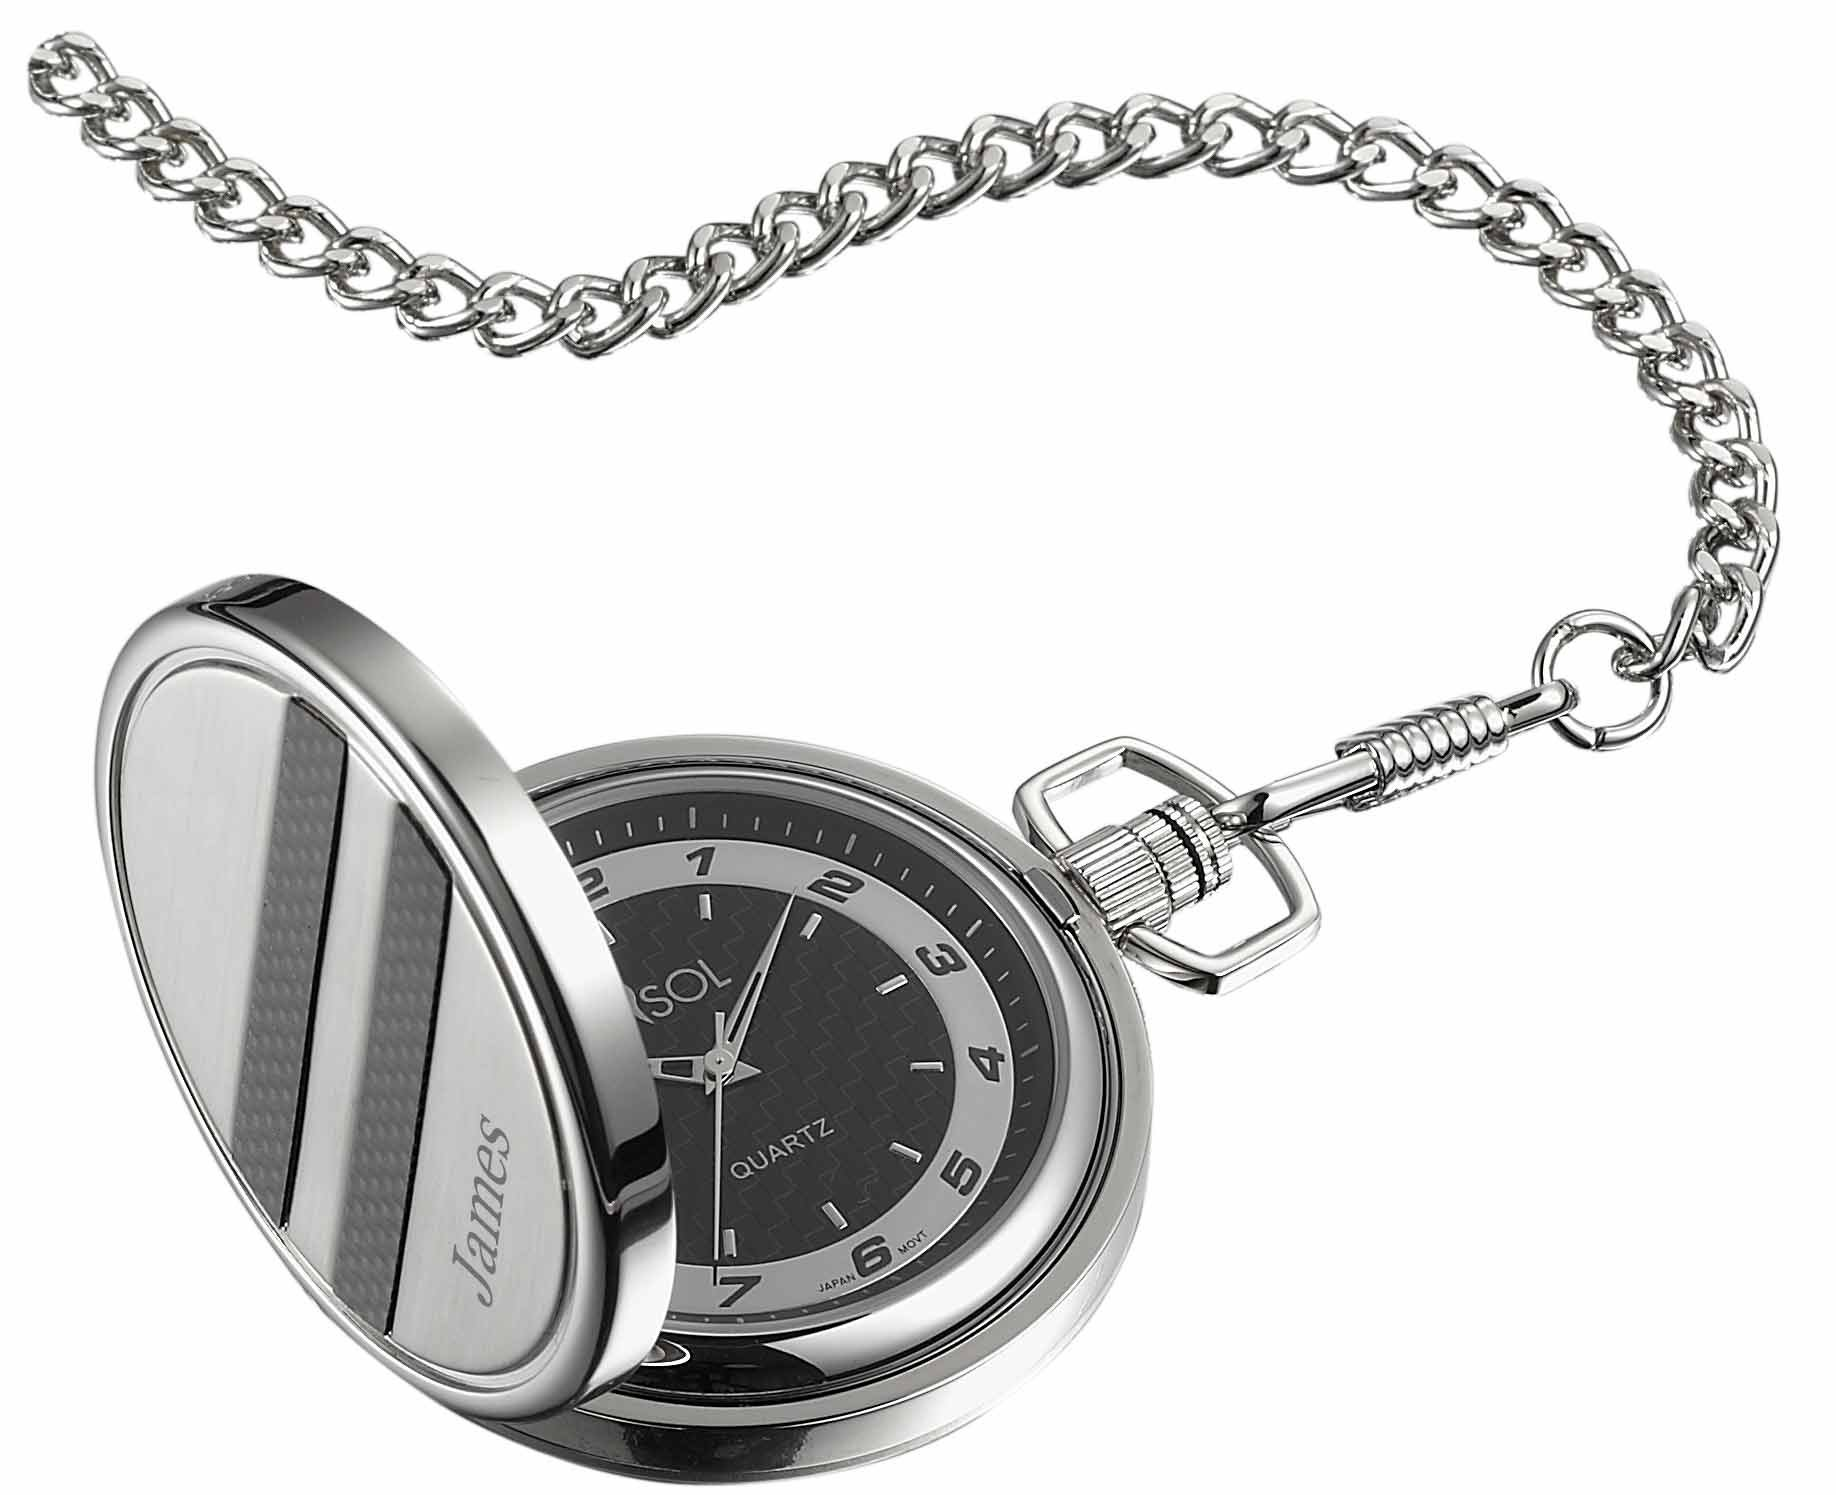 Personalized Visol Turbo Black Dial Carbon Fiber Pocket Watch with free engraving